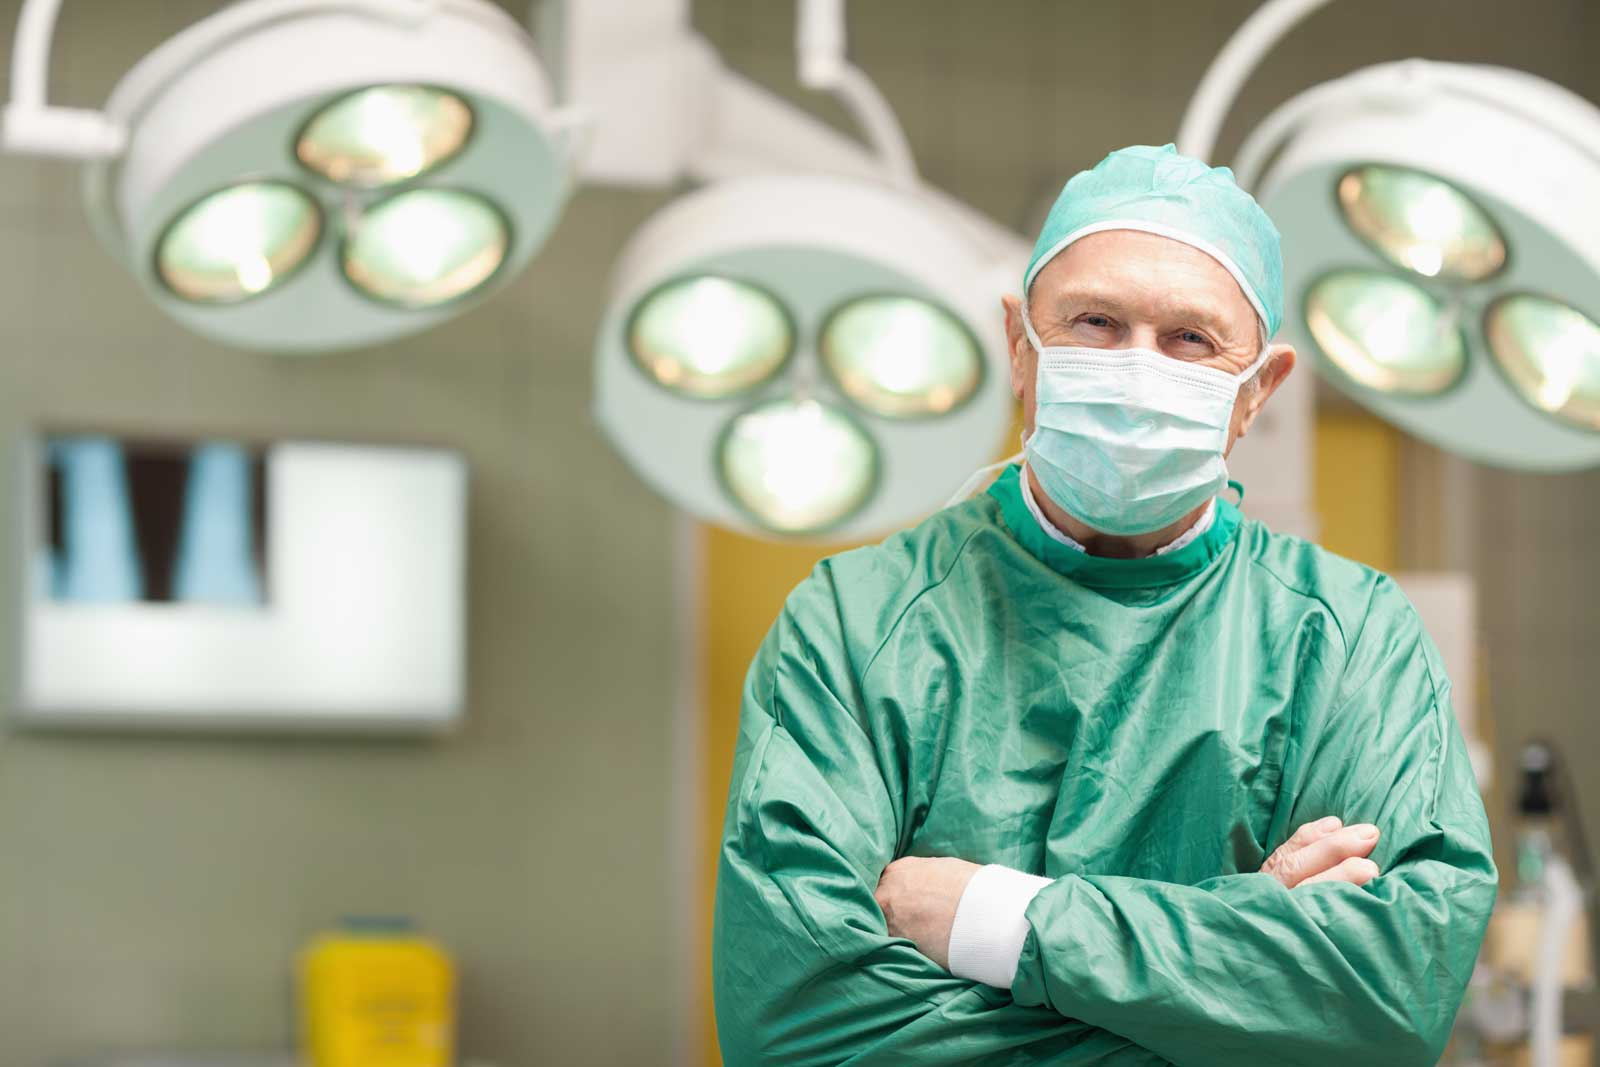 Smiling surgeon crossing his arms while standing